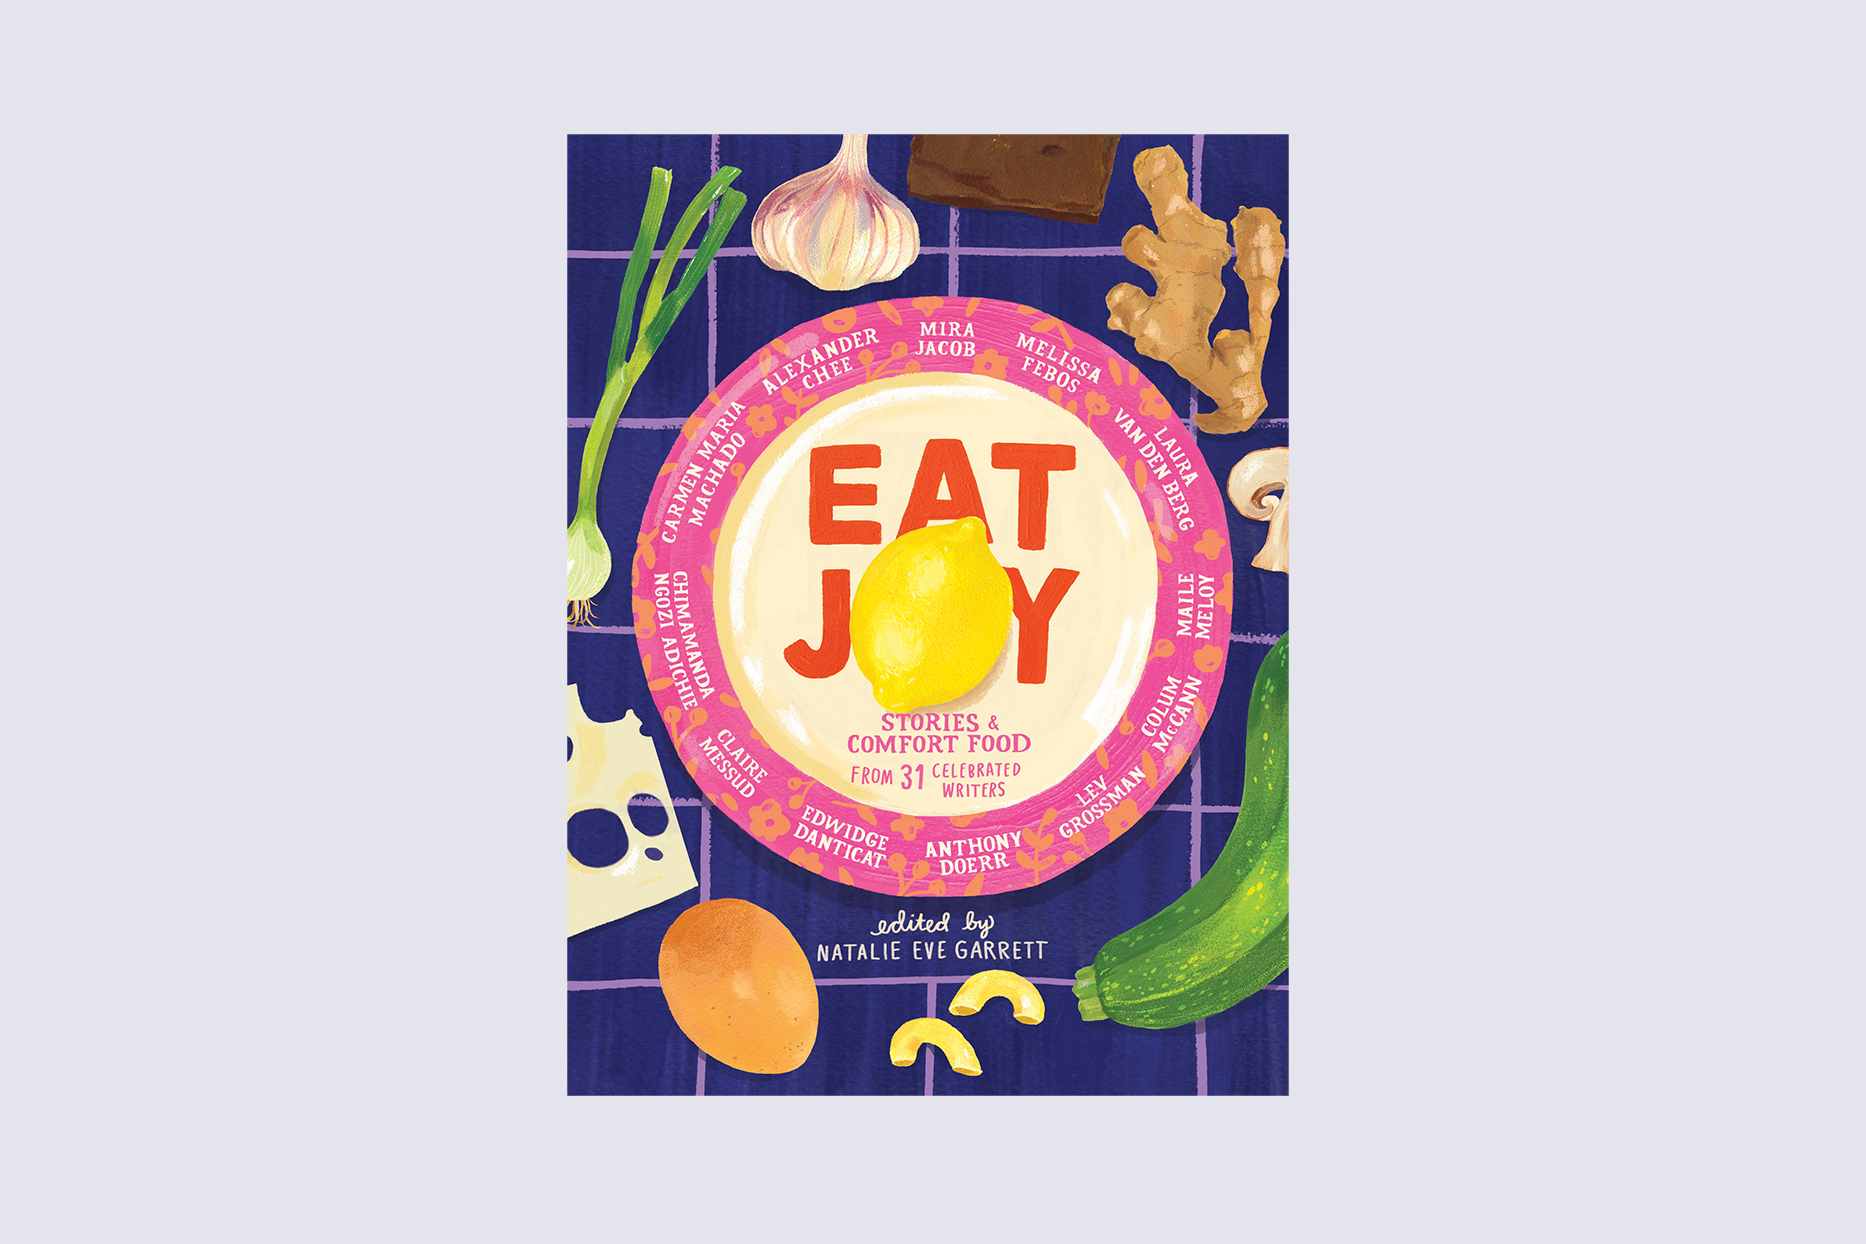 eat joy stories and comfort food cookbook